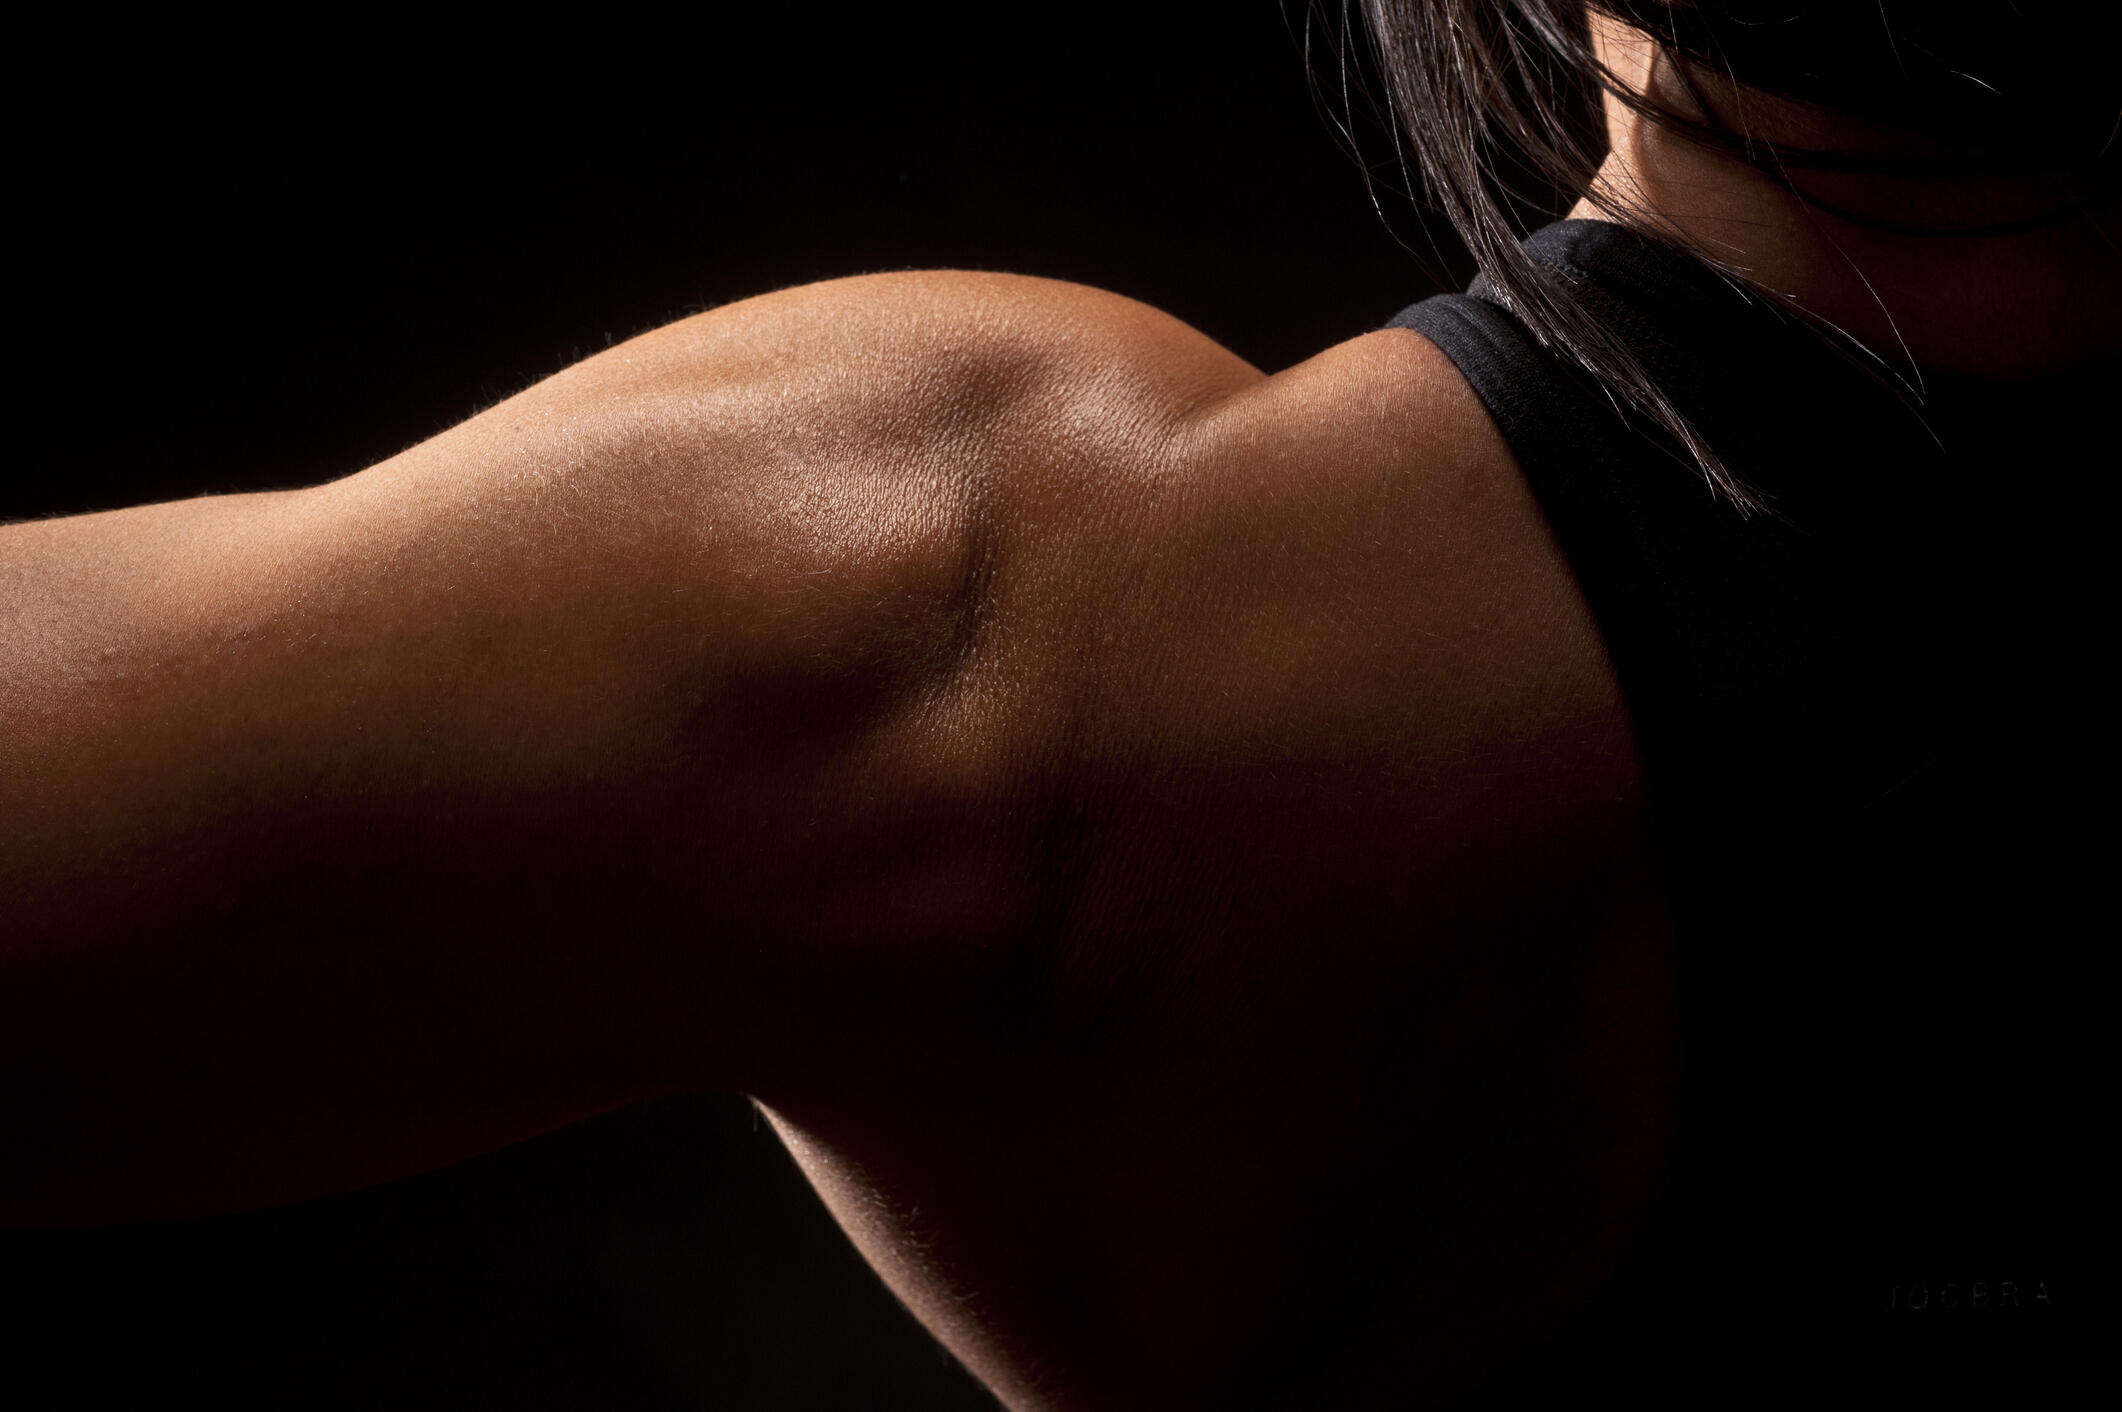 close up of a woman's strong shoulder muscles in low lighting gettyimages-154888824